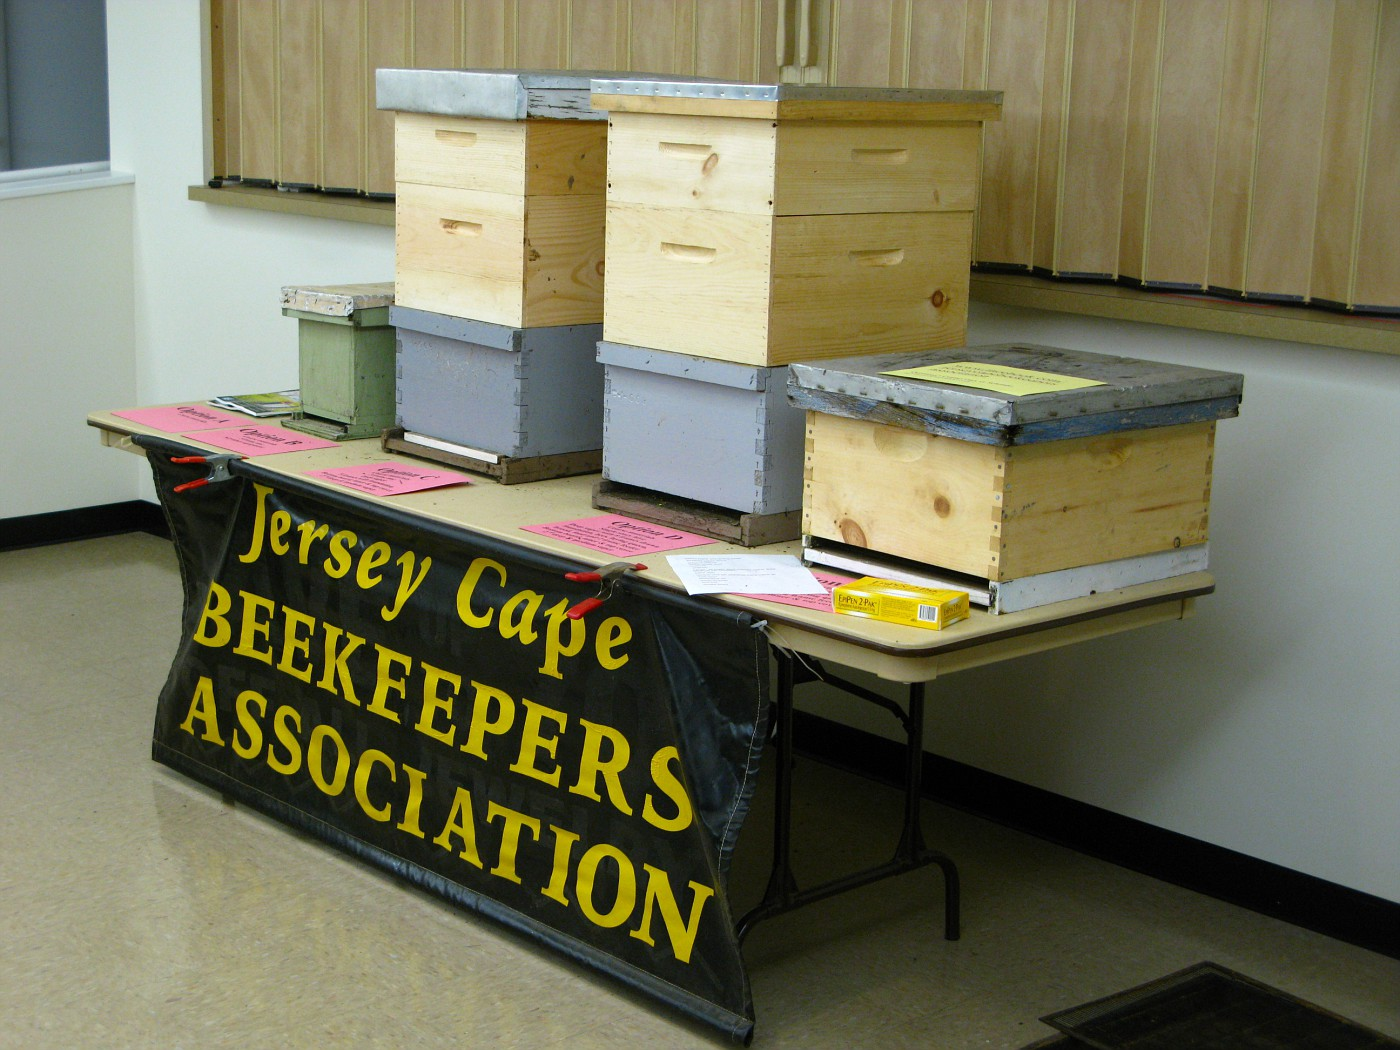 Jersey Cape Beekeepers Association Bee-ginners Beekeeping Course Session 2 of 6.